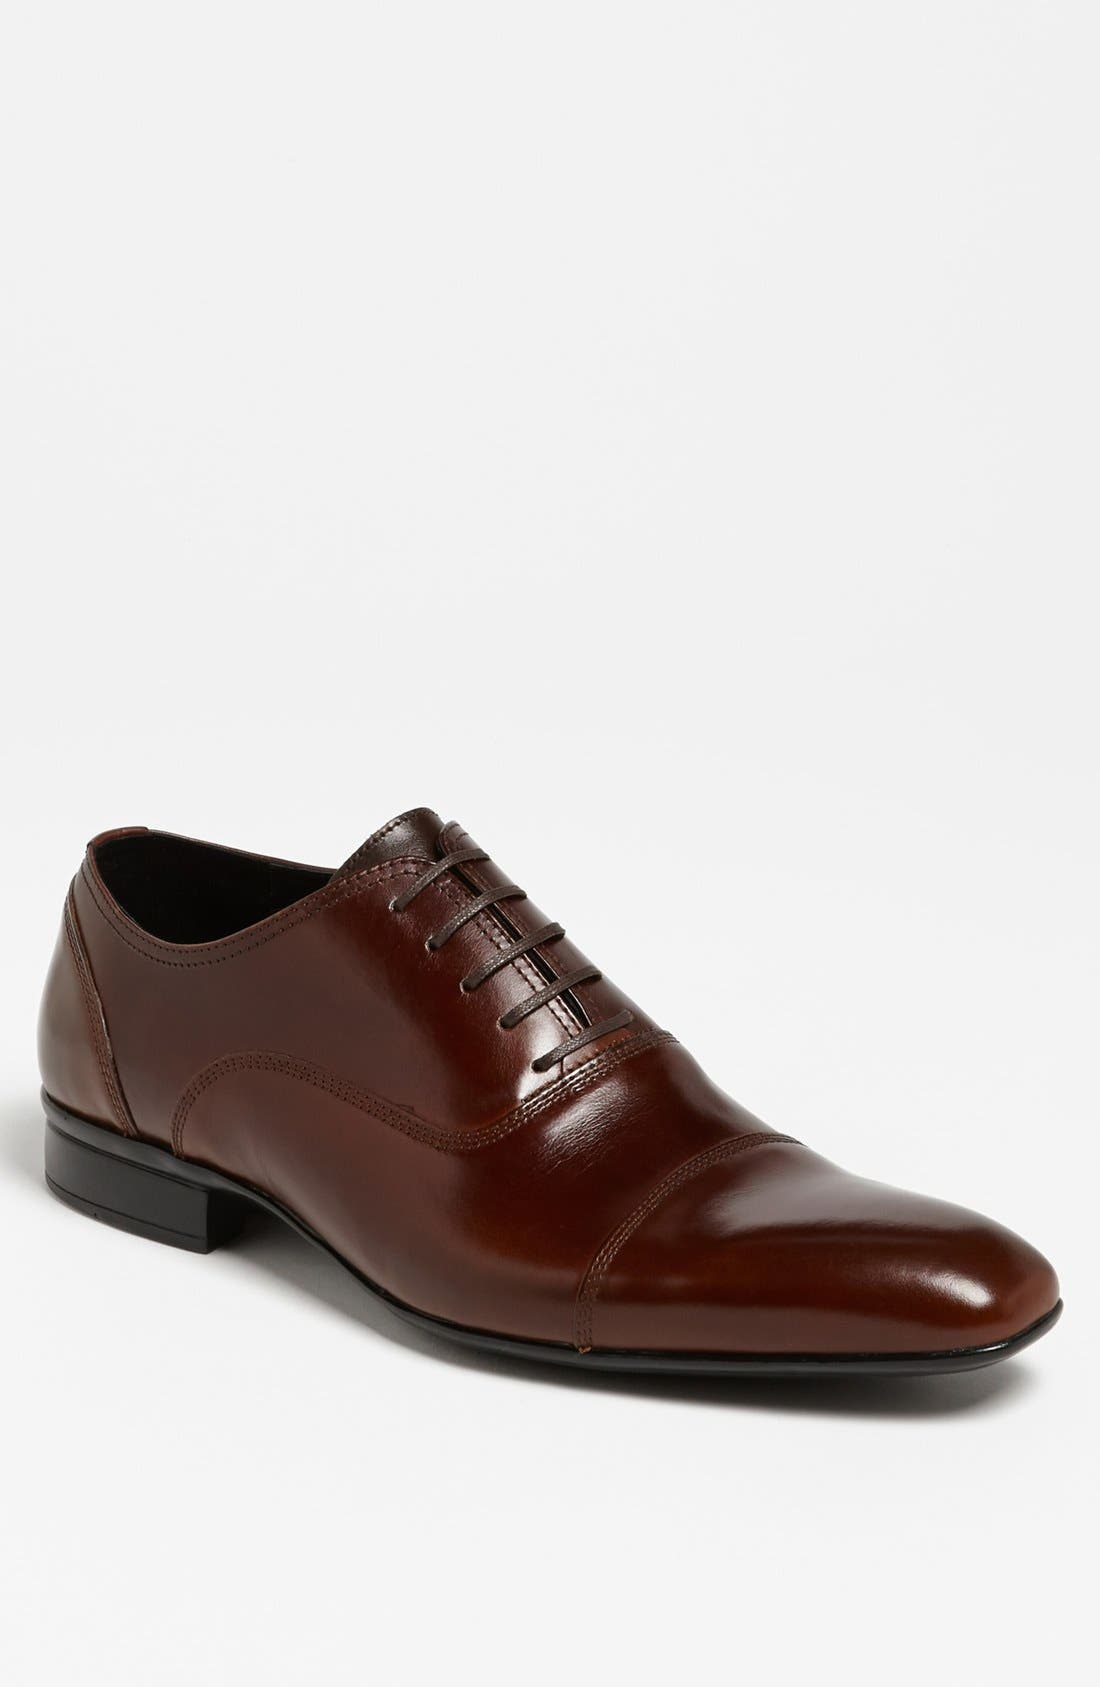 Main Image - Kenneth Cole New York 'Success Rate' Cap Toe Oxford